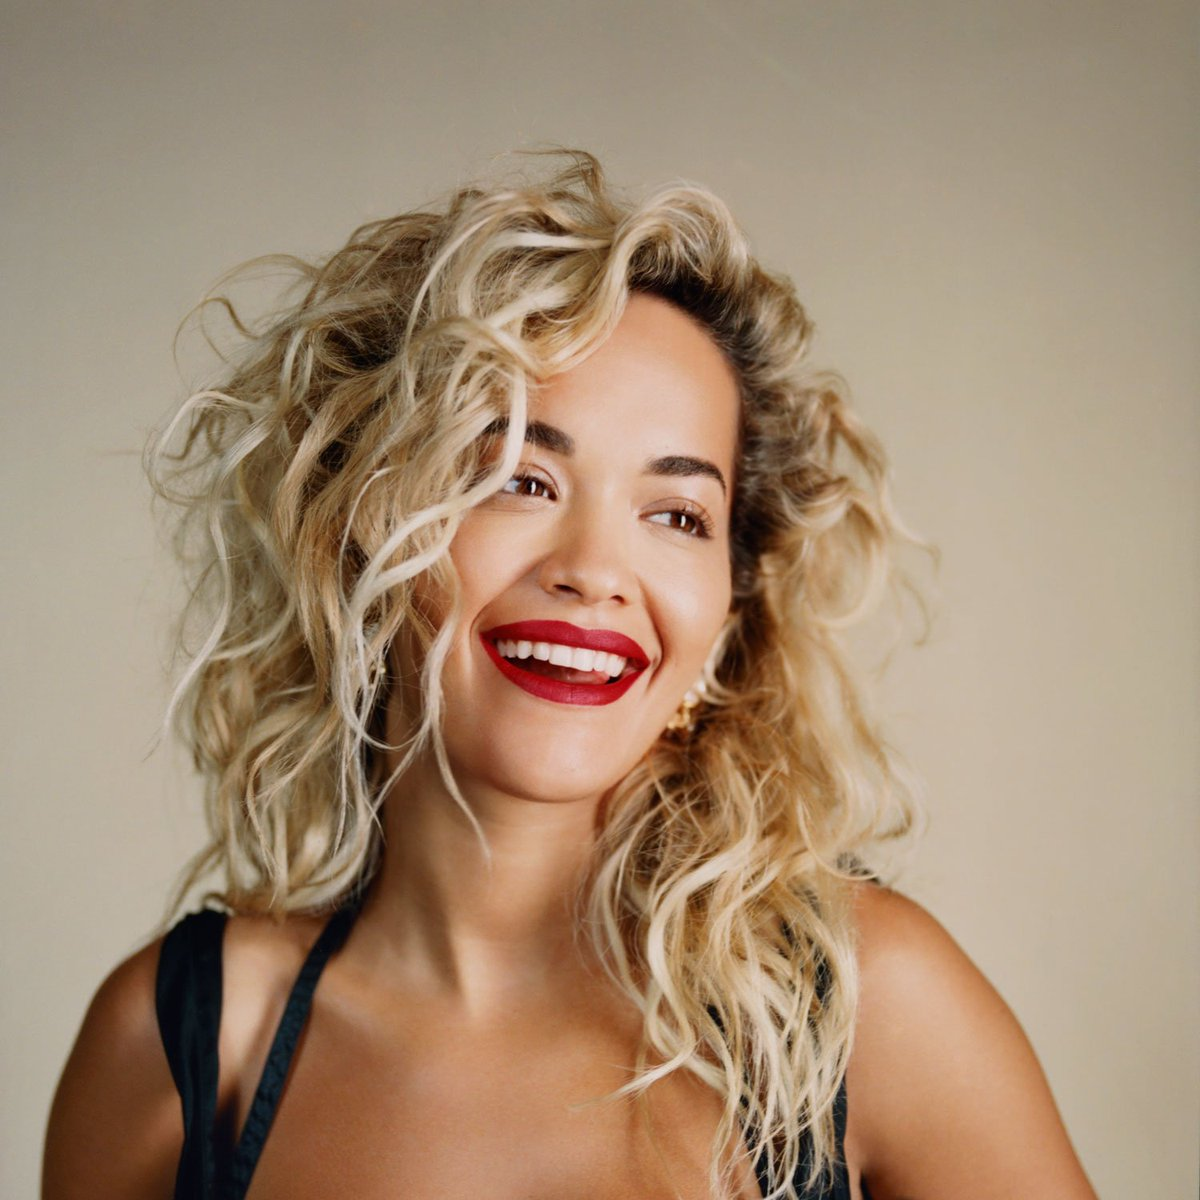 RT @Spotify: #Phoenix has risen! Listen to @RitaOra's new album now https://t.co/29jq5yQUtT https://t.co/wElnWFthkK